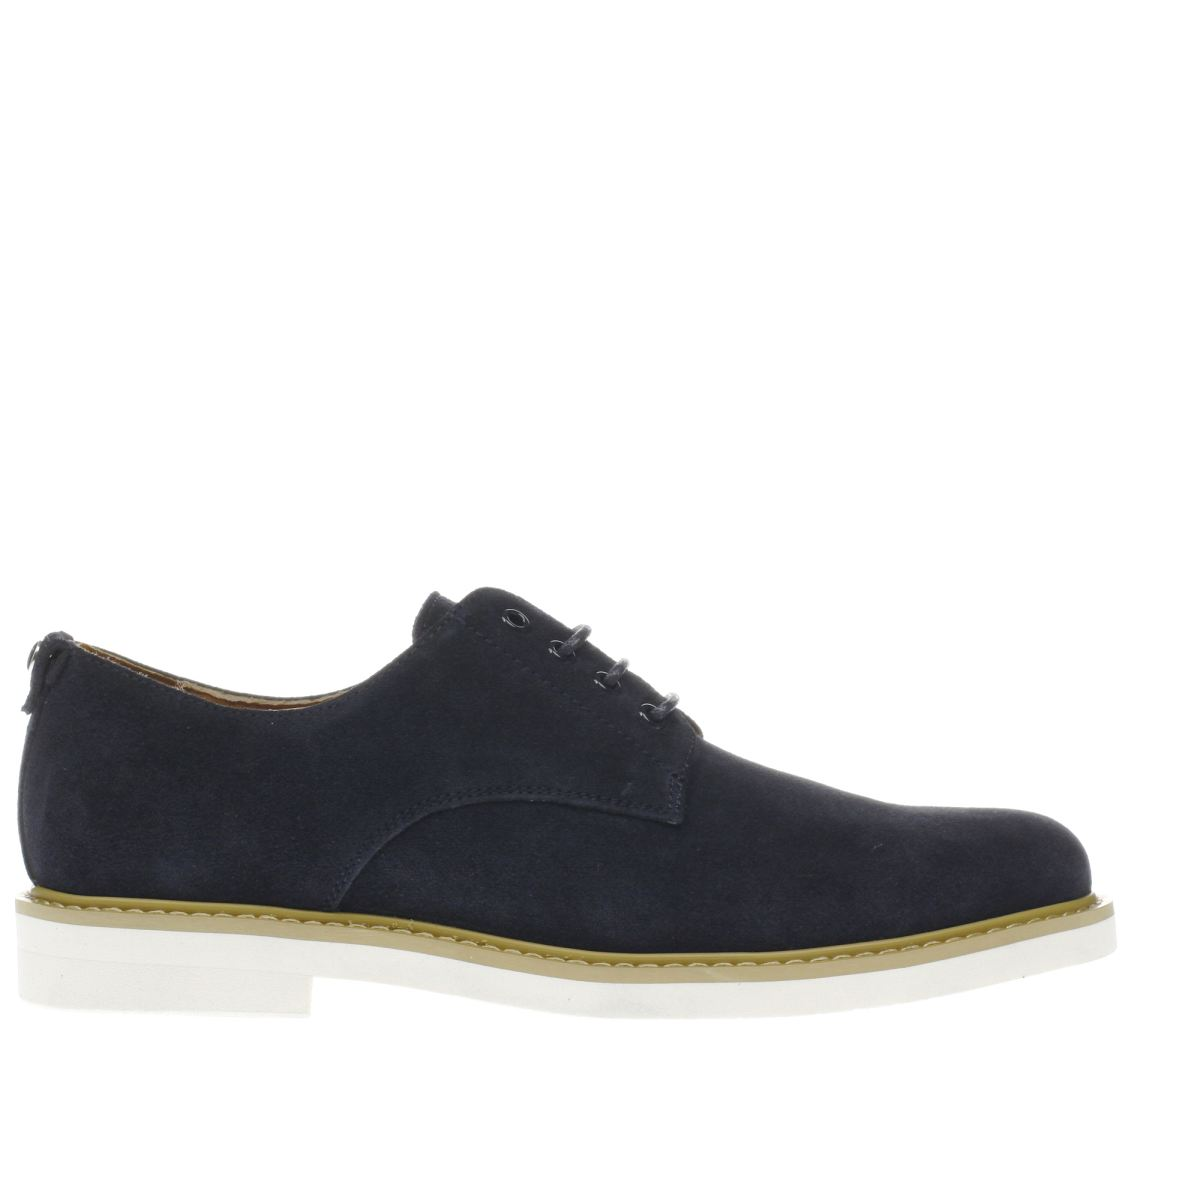 Peter Werth Peter Werth Navy Pegg Derby Shoes